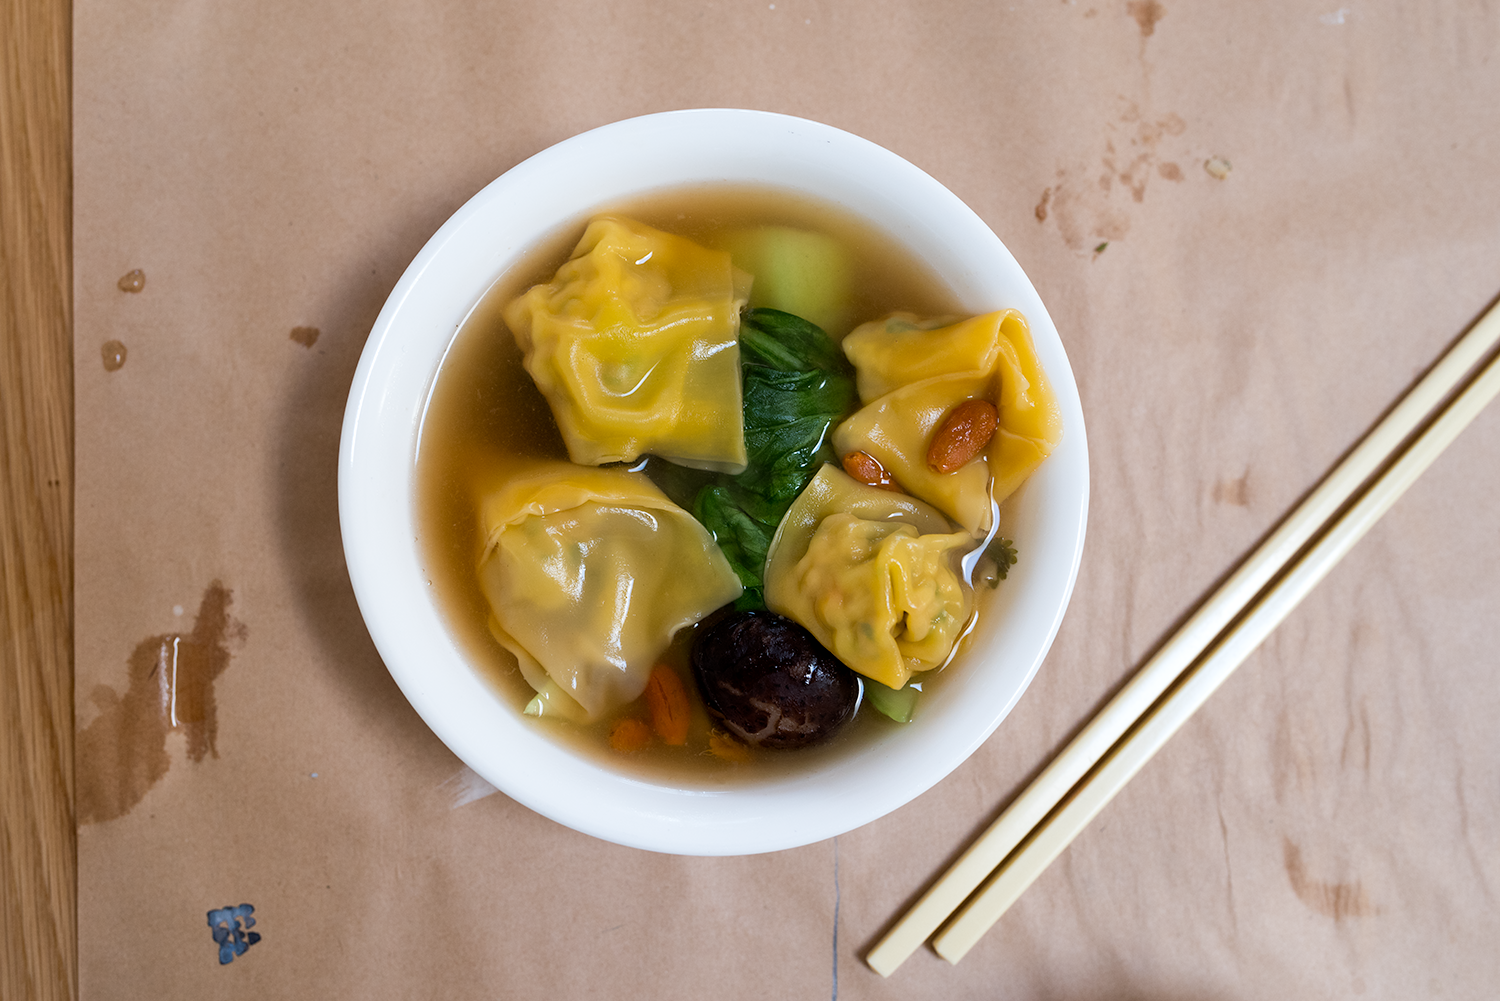 The wonton soup we made for lunch! So good.